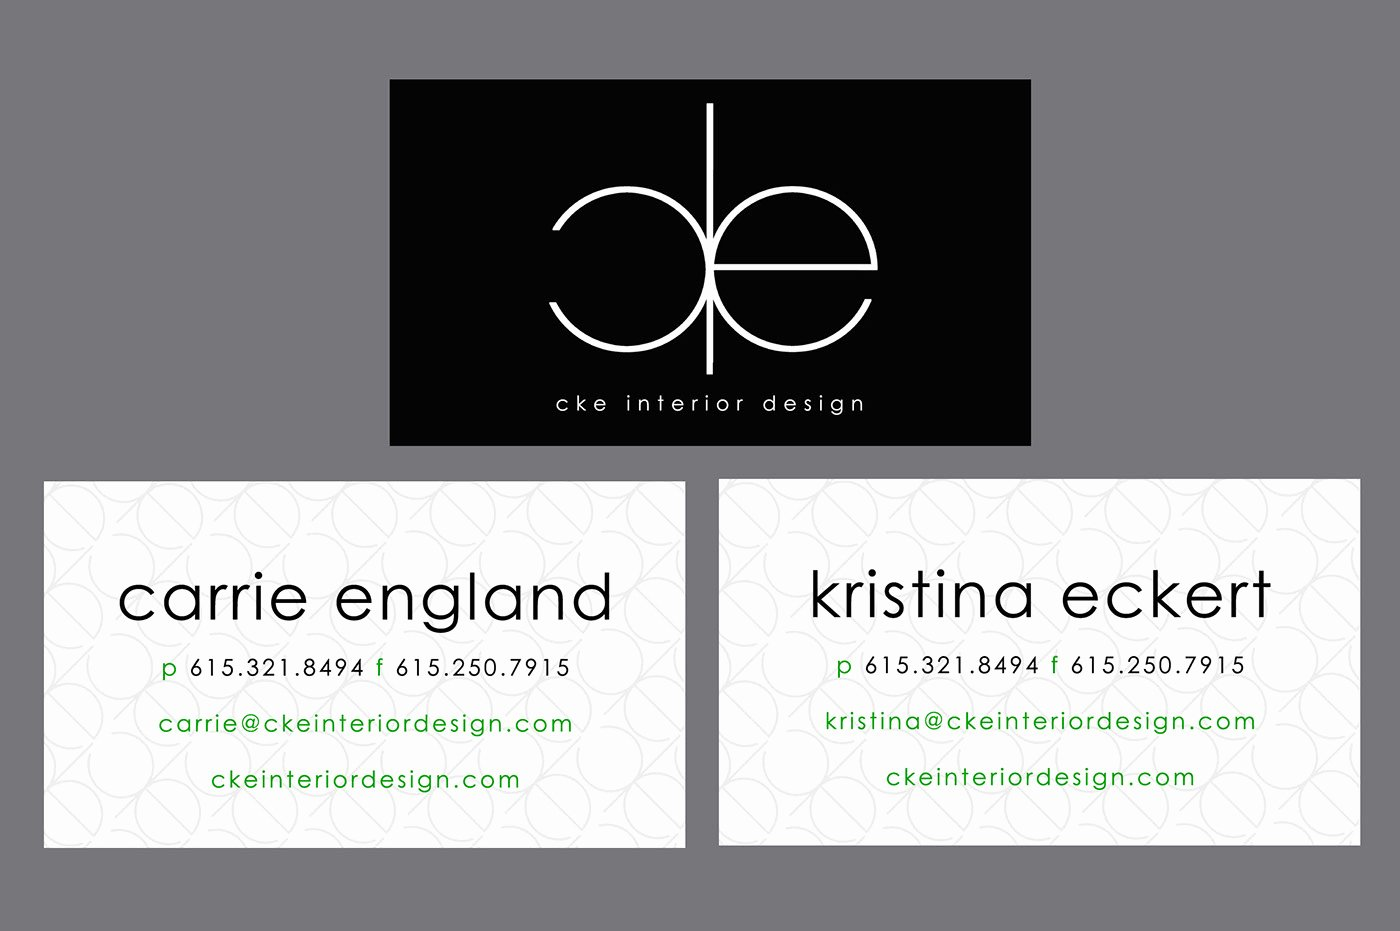 Interior Design Business Cards Lovely Cke Interior Design Business Cards On Behance